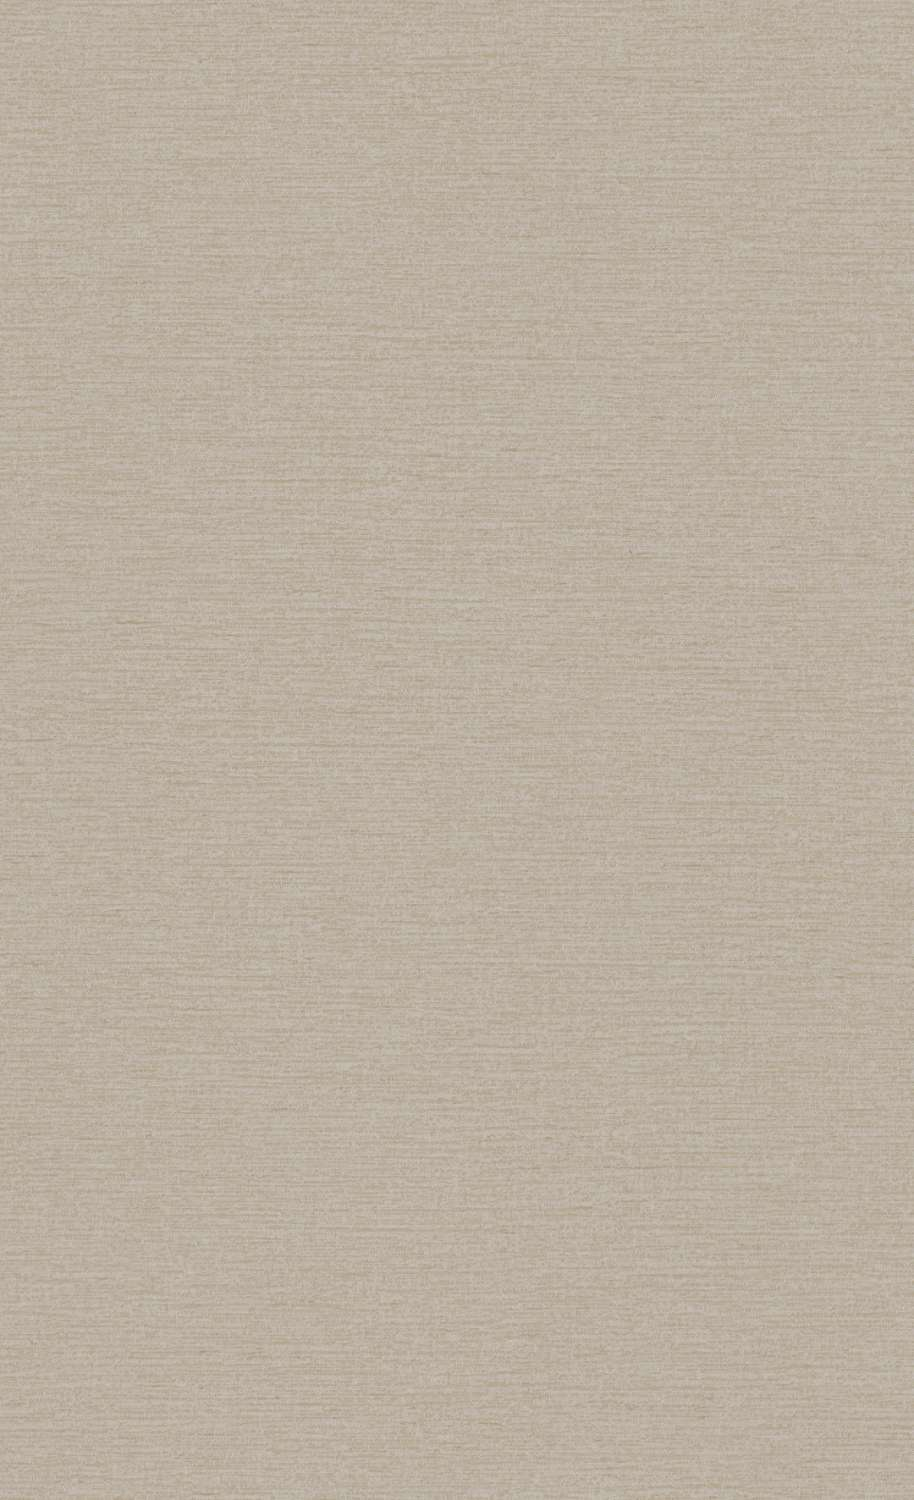 Modern Plain Textured Wallpaper C7207 | Silver Gray Commercial Wallpaper , corporate, hospitality, non woven